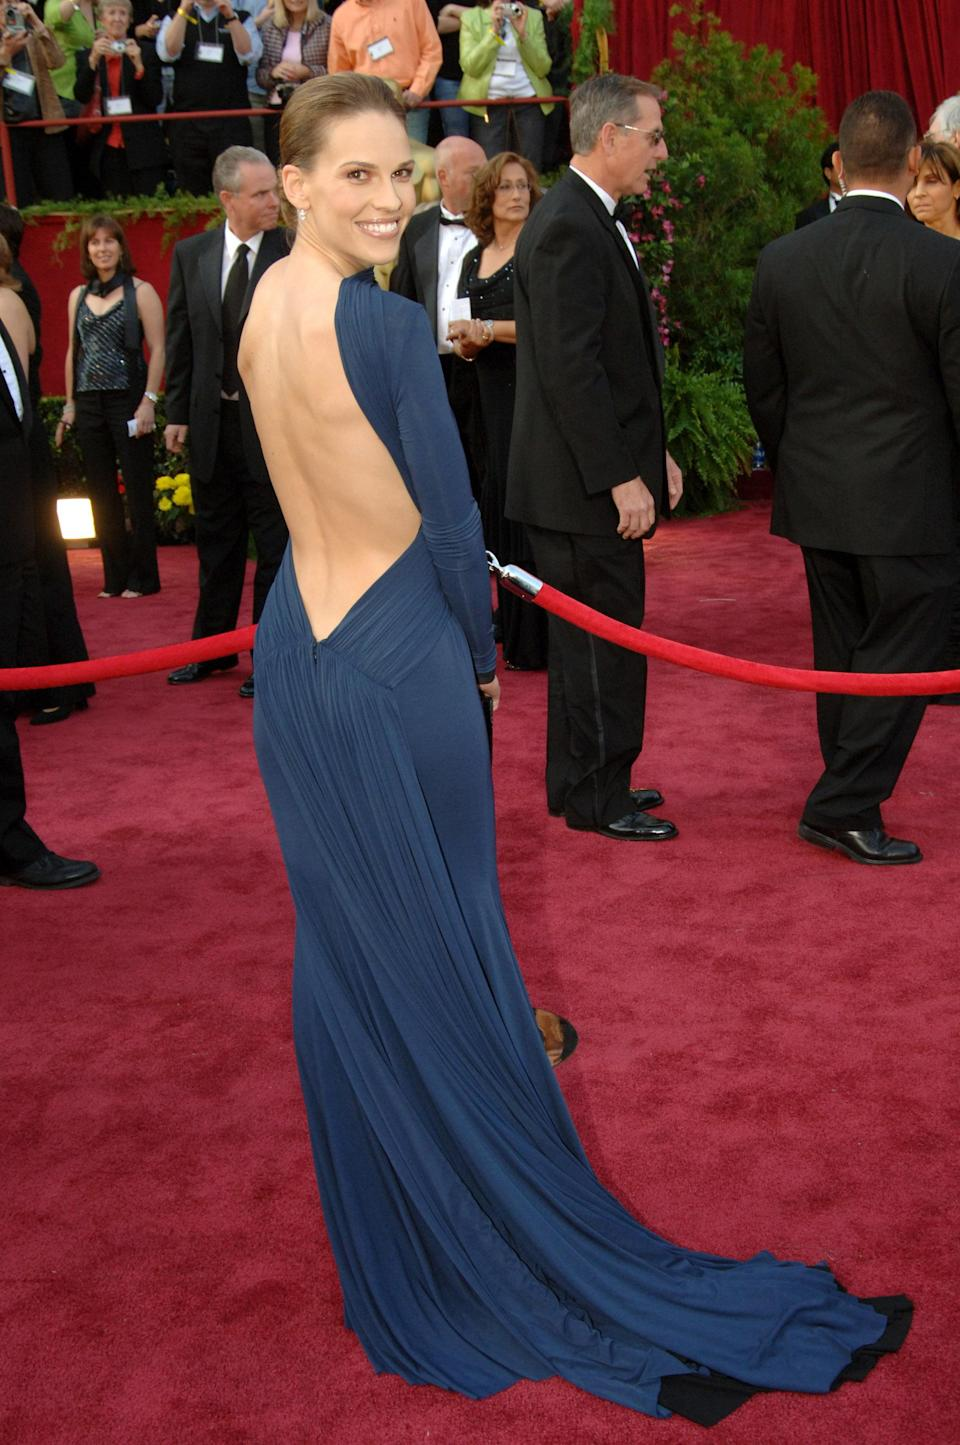 Hilary's backless, navy blue Guy Laroche dress remains as famous today as it was in 2005. In a poll by Debenhams published in <em>The Daily Telegraph</em> the dress was voted the 16th greatest red carpet gown of all time.